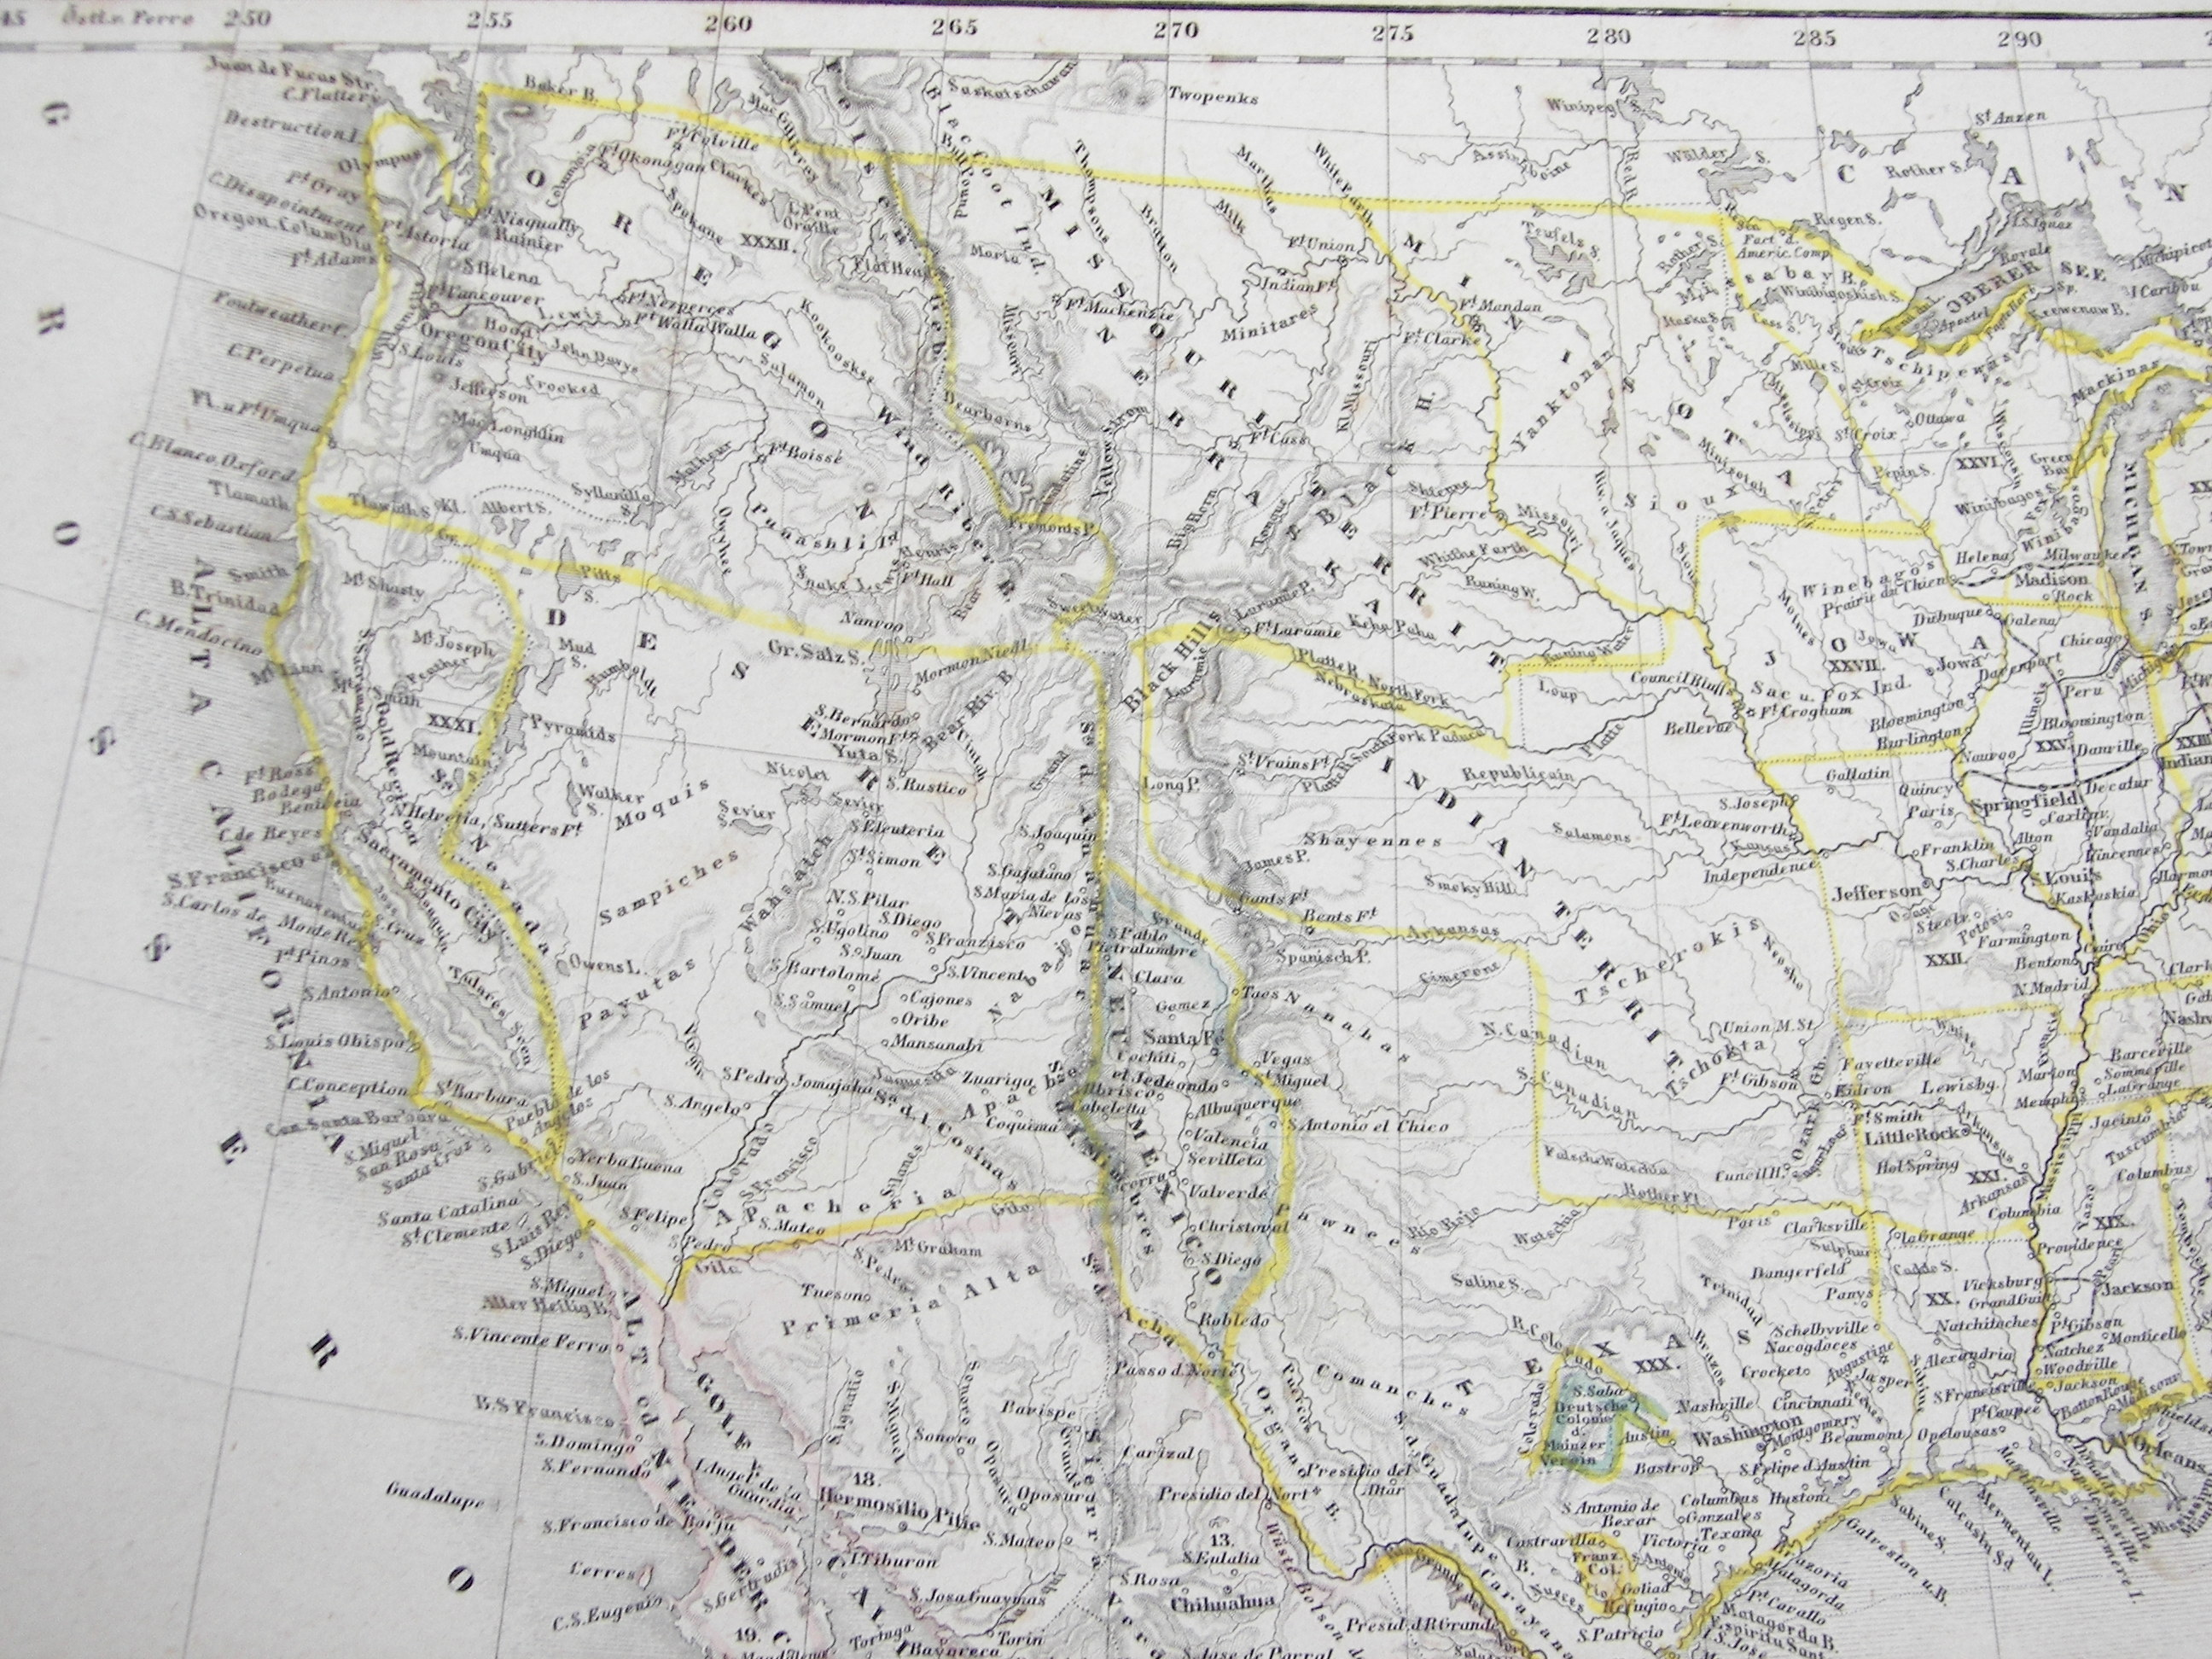 Washington County Maps And Charts - Map-western-us